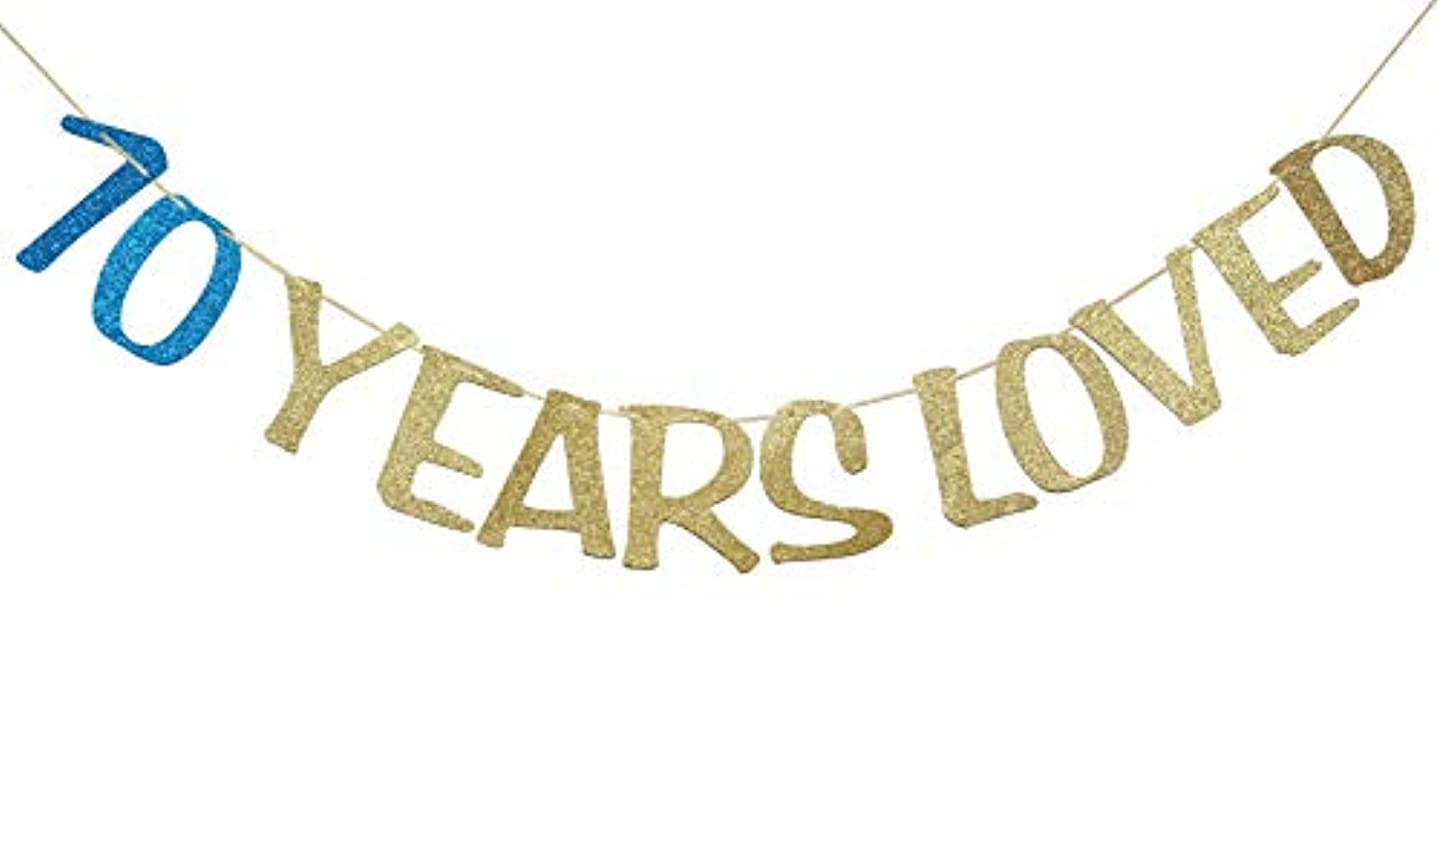 70 Years Loved Banner Sign Gold Glitter for 60th Birthday Party Decorations Anniversary Decor Photo Booth Props (70th, Navy Blue)